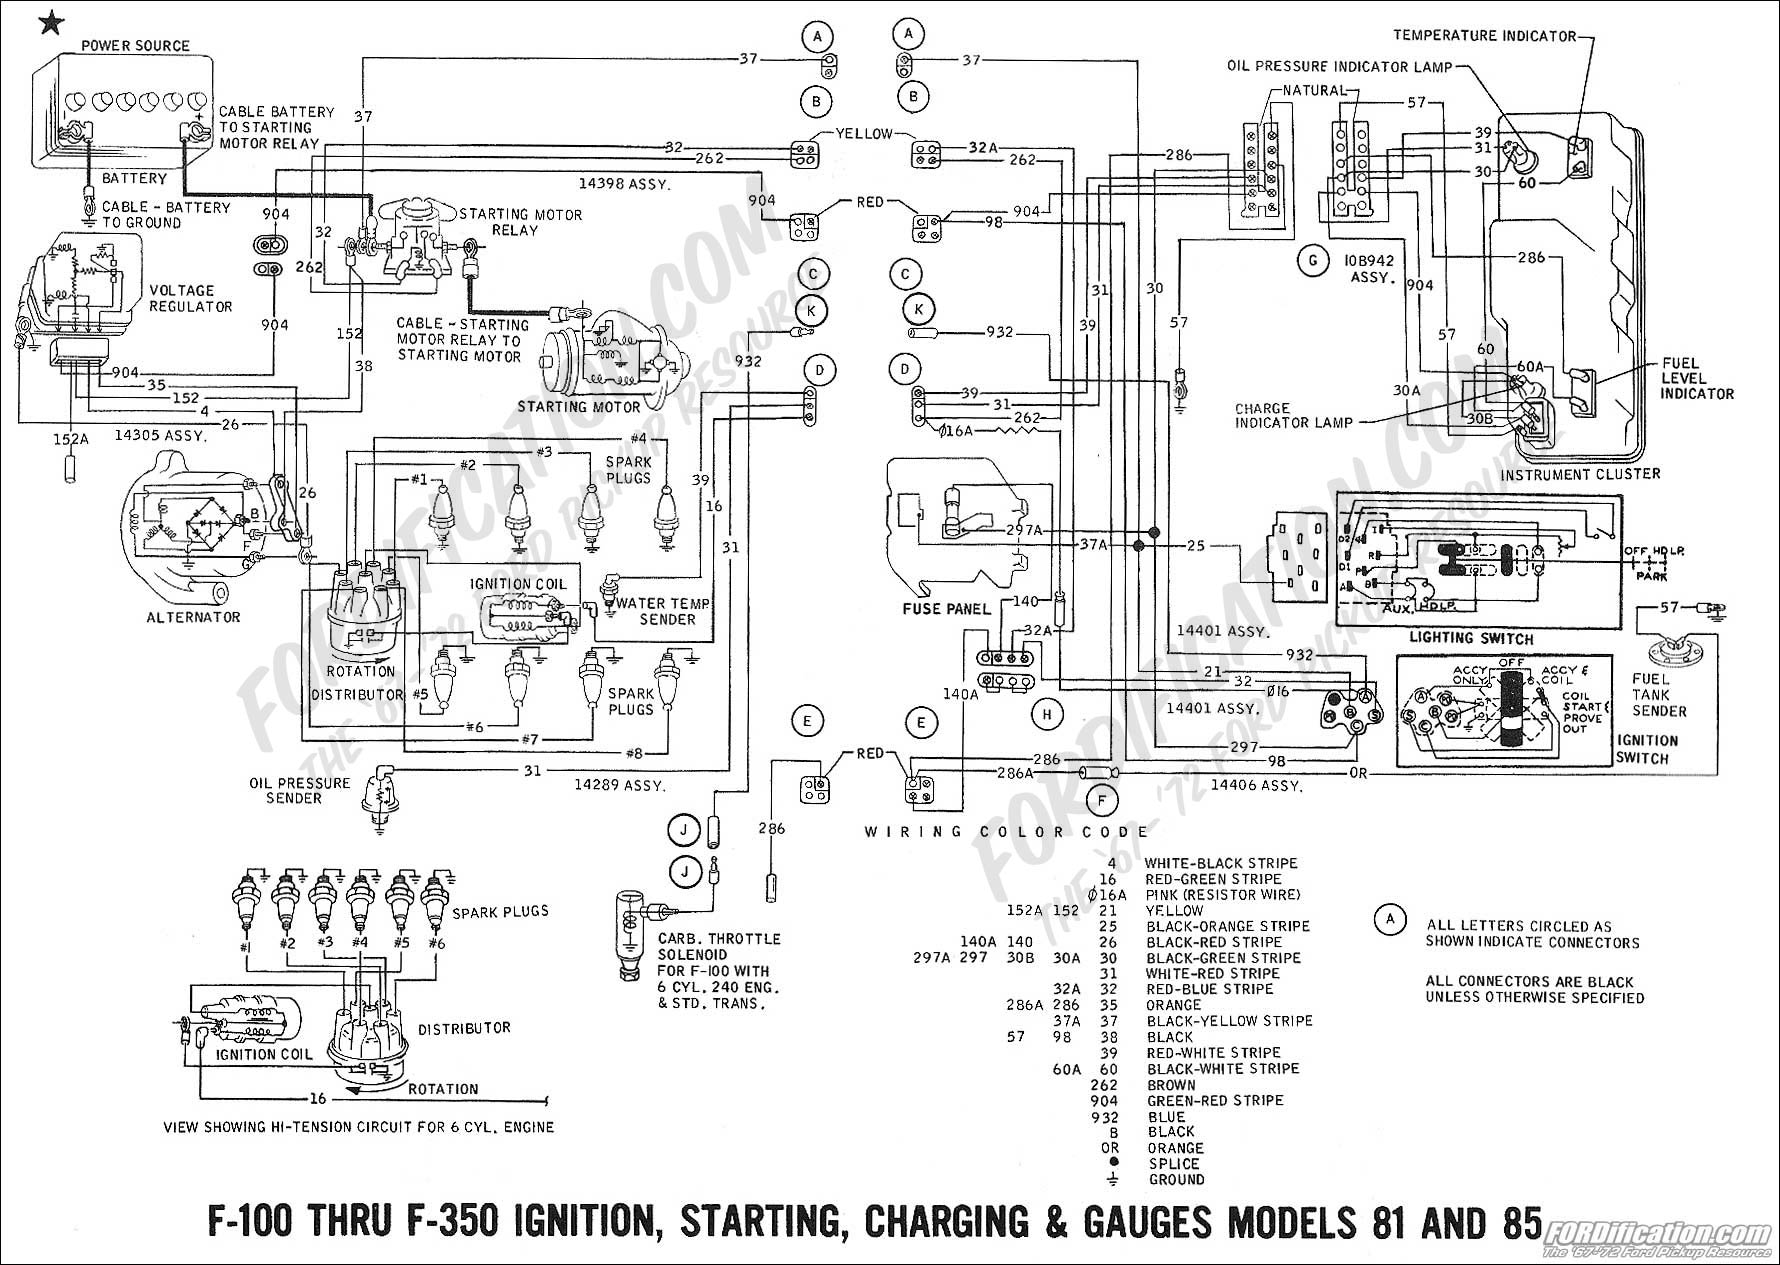 87 Ford Mustang Wiring Diagram Detailed Schematics 1969 Radio 1985 Ignition Switch 93 1968 Charging